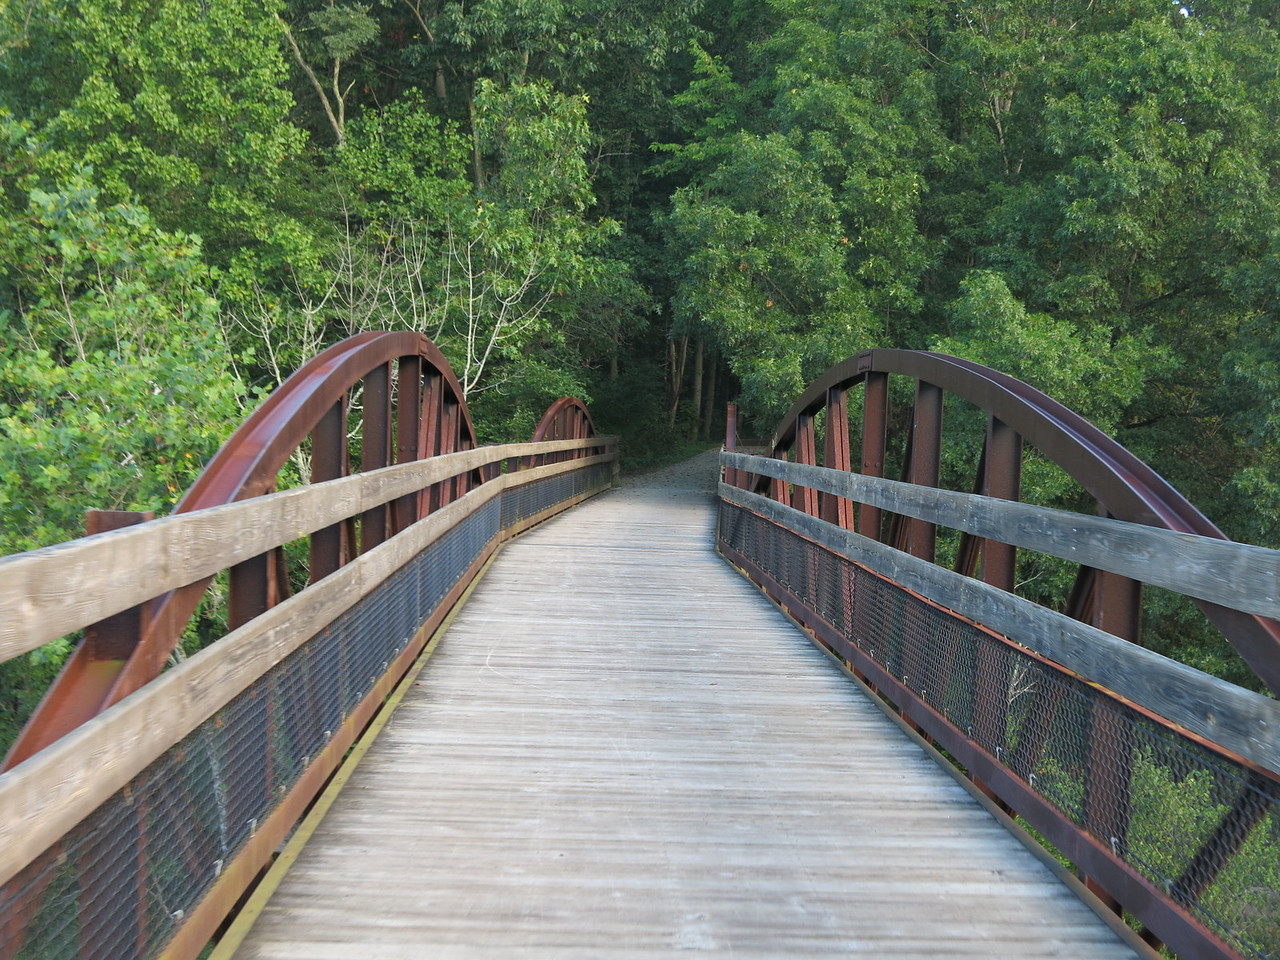 Leaving Low Bridge and entering the Ferncliff Peninsula